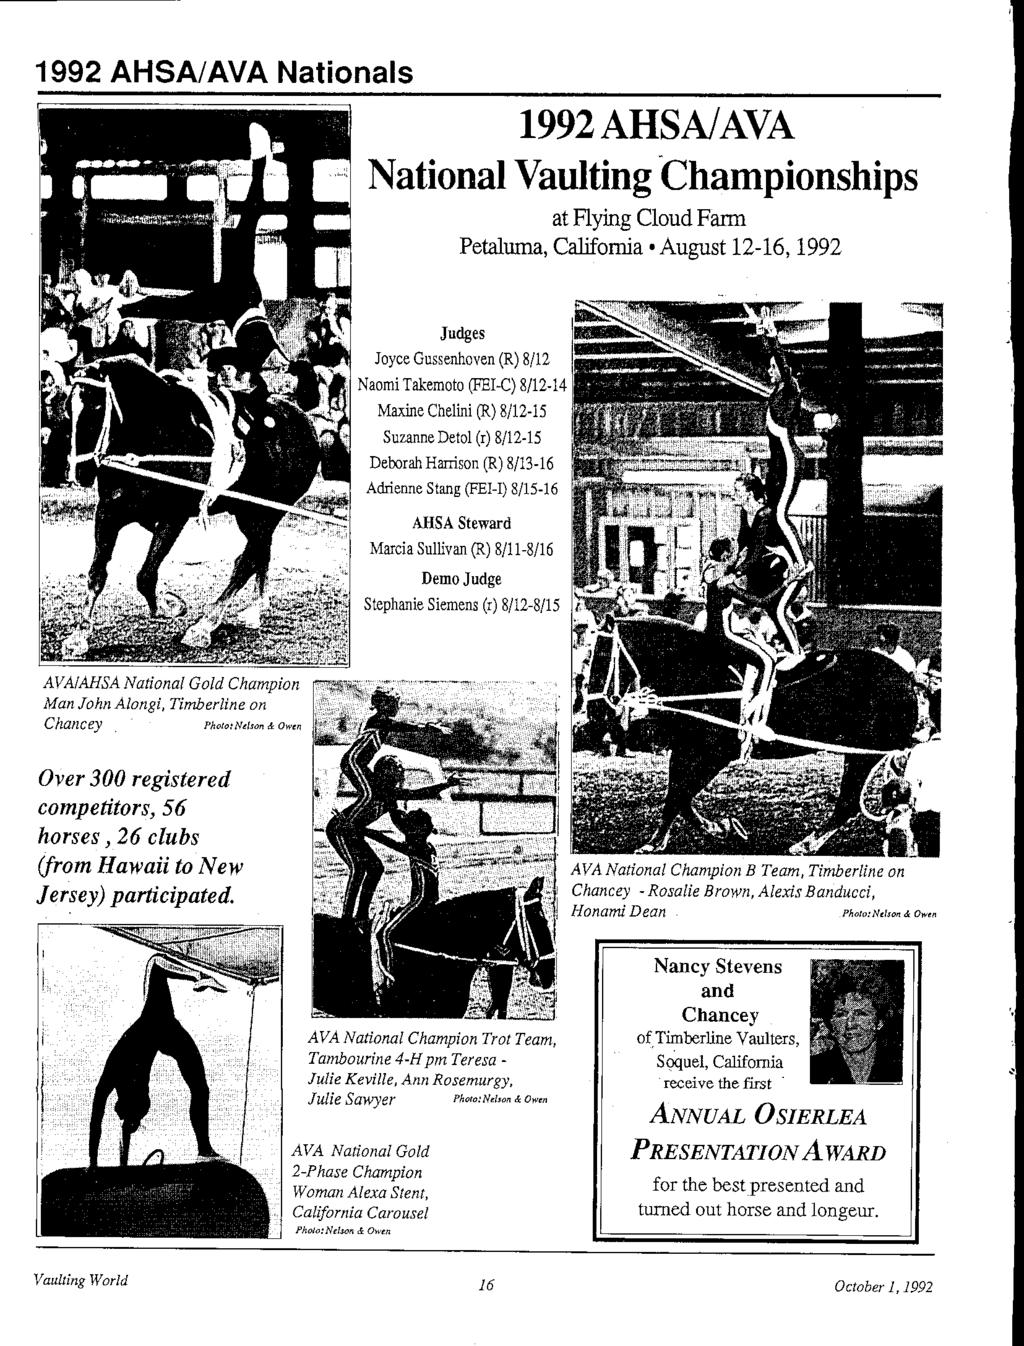 AULTING WORLD OFFICIAL PUBLICATION OF THE AMERICAN VAULTING